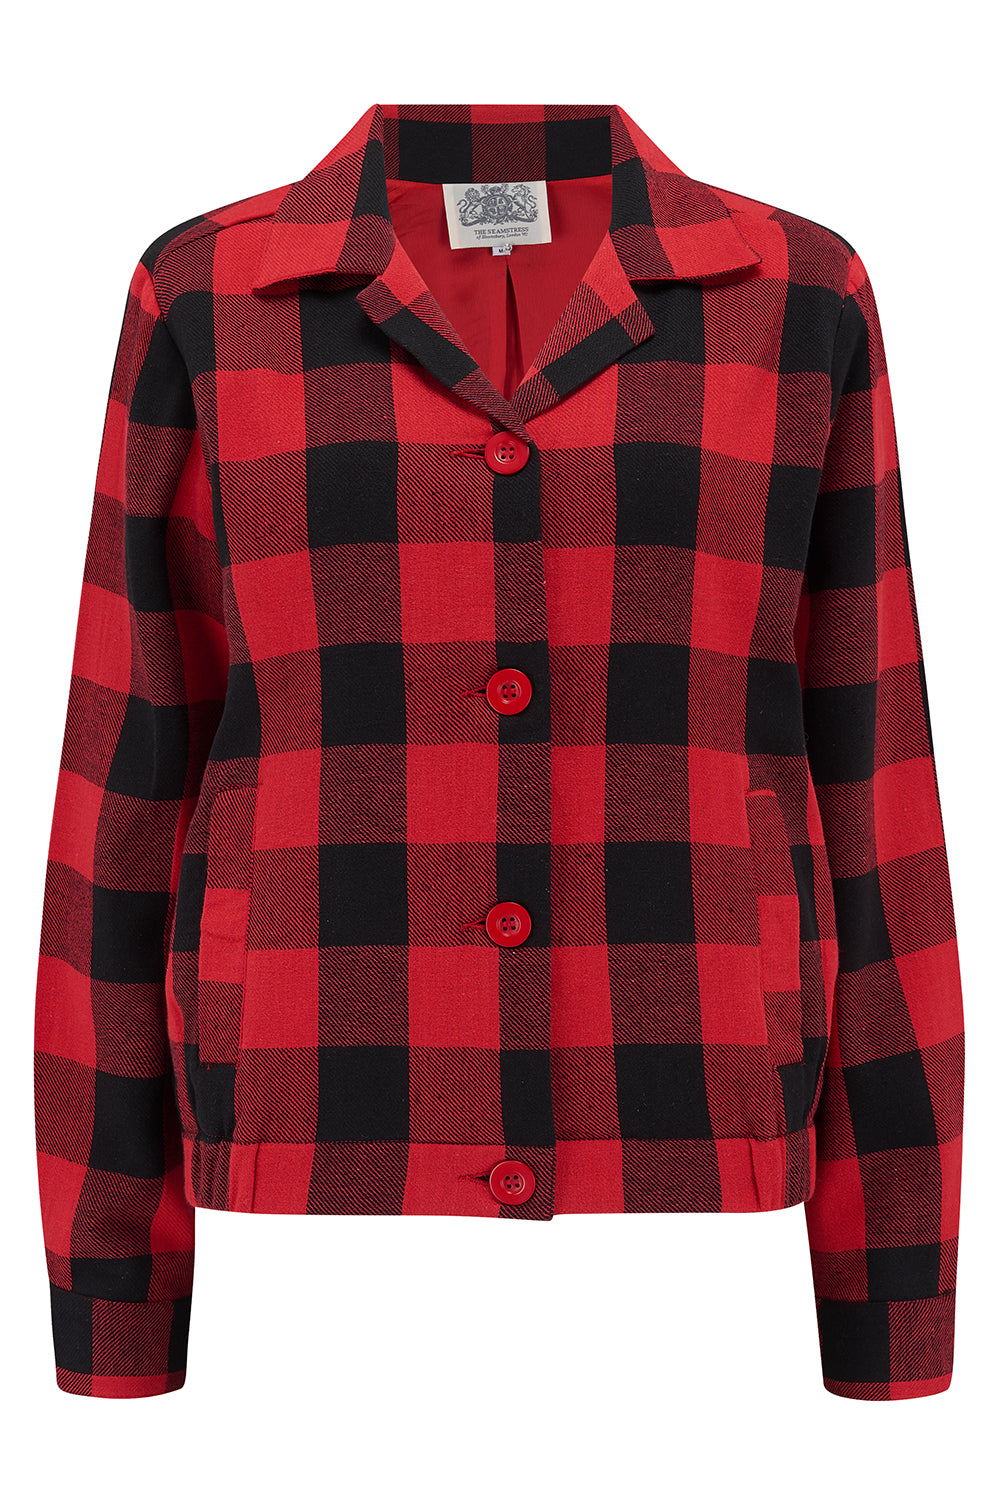 Vintage Coats & Jackets | Retro Coats and Jackets Short 40s Nicki Jacket Check in redblack check Authentic  Classic 1940s Vintage Inspired Style £99.00 AT vintagedancer.com